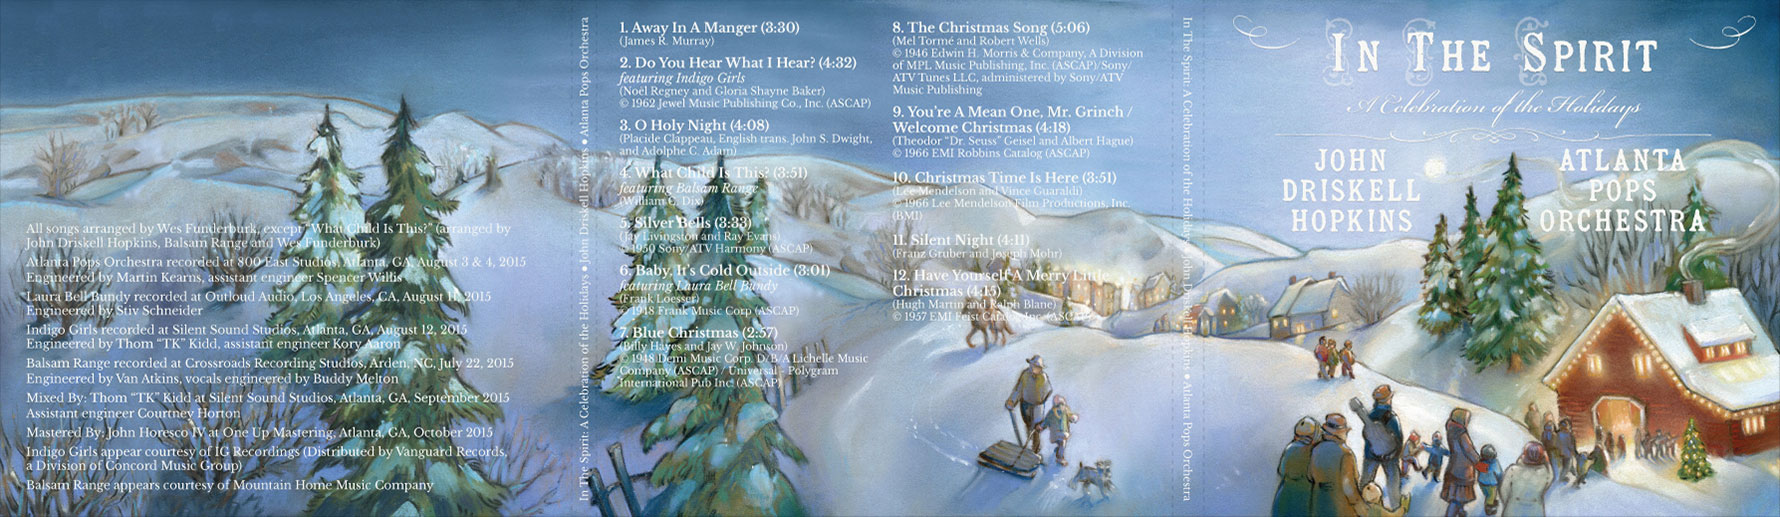 In The Spirit: A Celebration of the Holidays - Compact Disc - outer cover